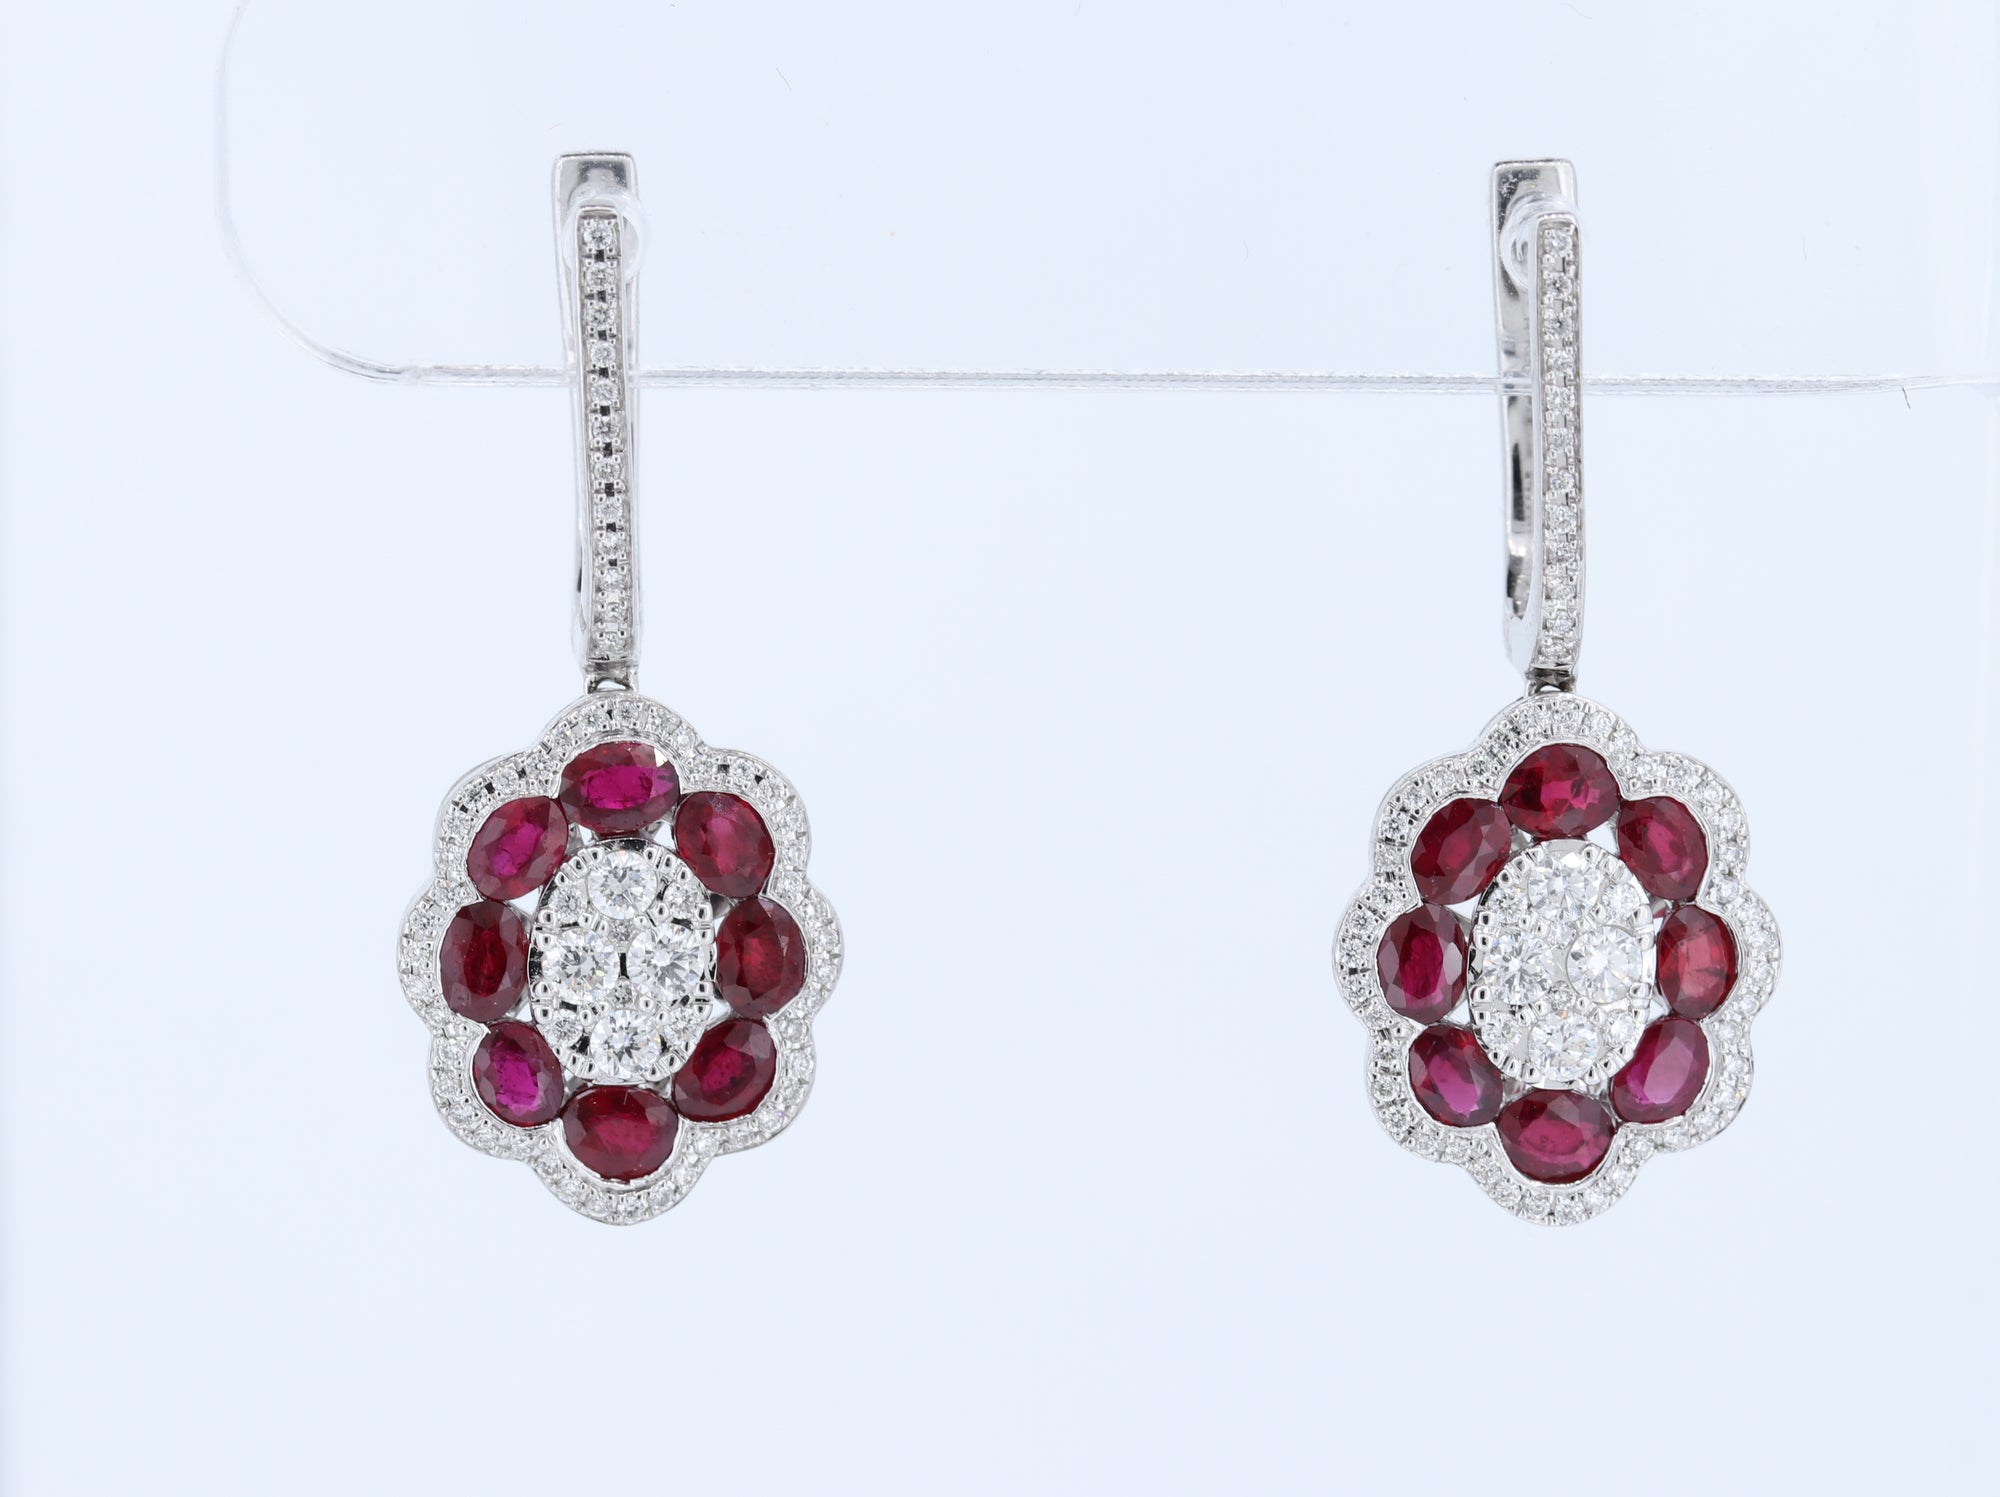 14kt Ruby and Diamond Earrings in White Gold - Ruby Count - 16 pcs (4.19ctw)